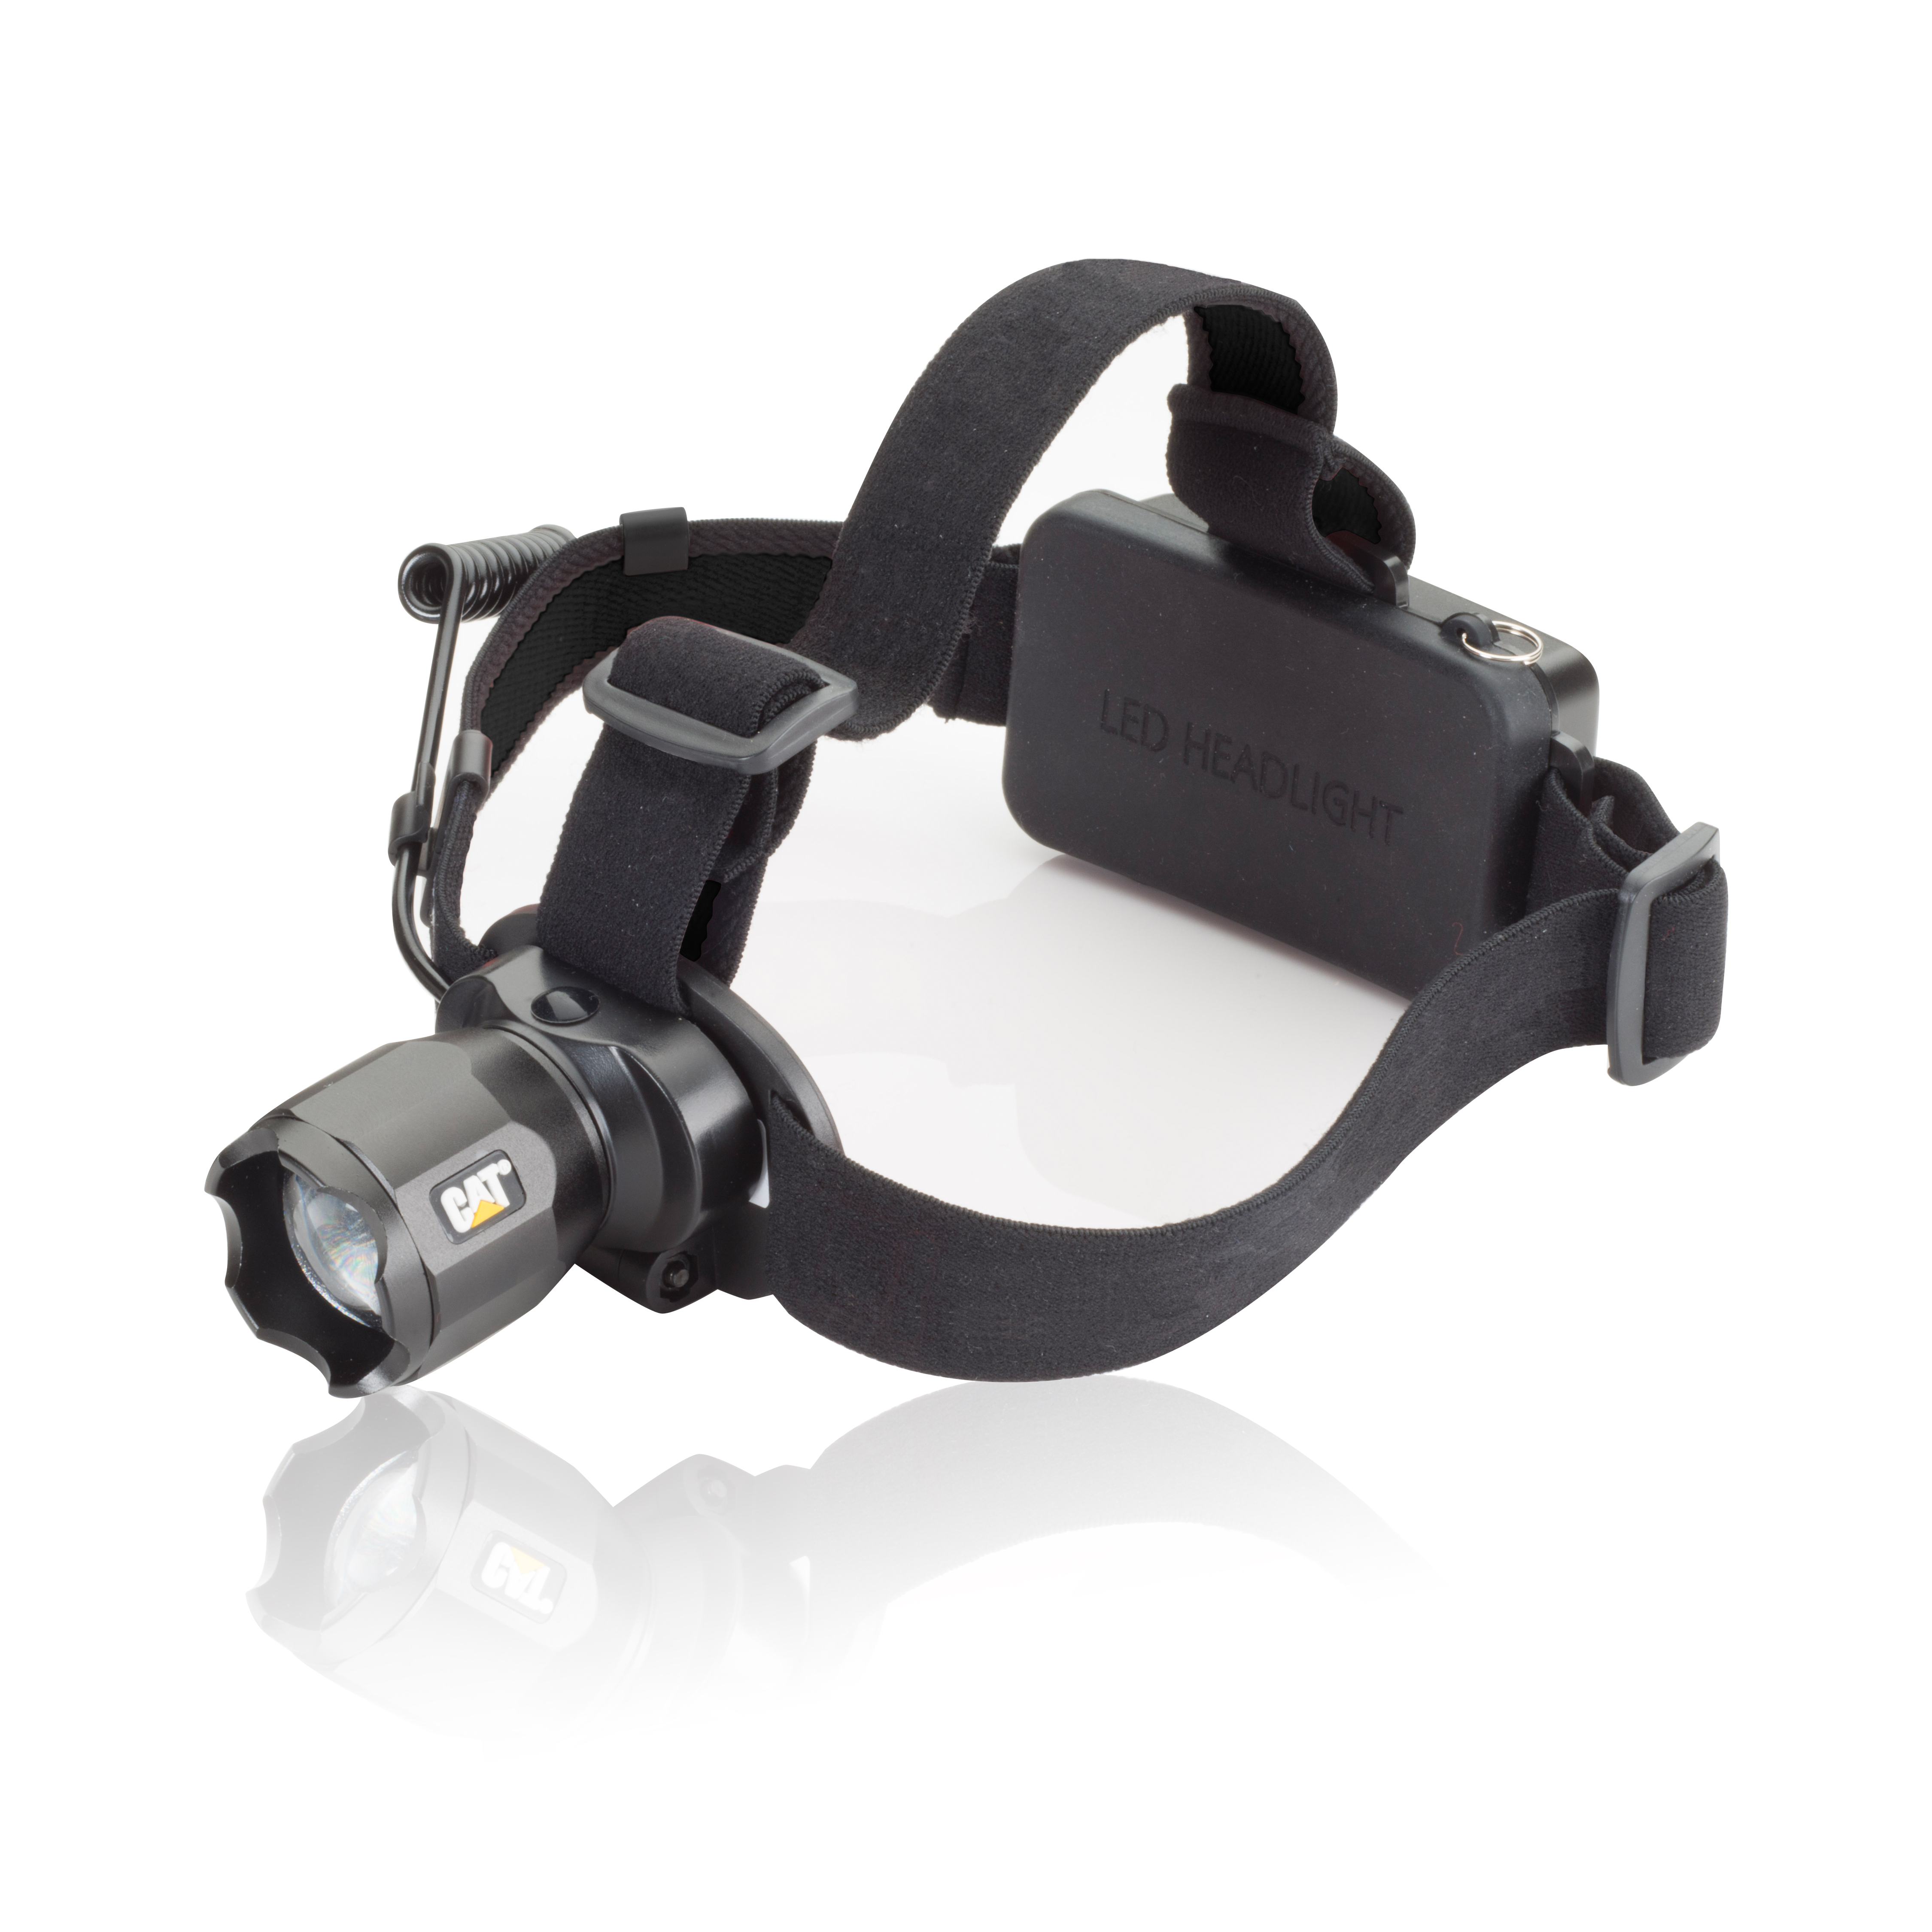 Caterpillar Black 380 Lumen Rechargeable CREE LED Focusing Headlamp with Adjustable Angle Head